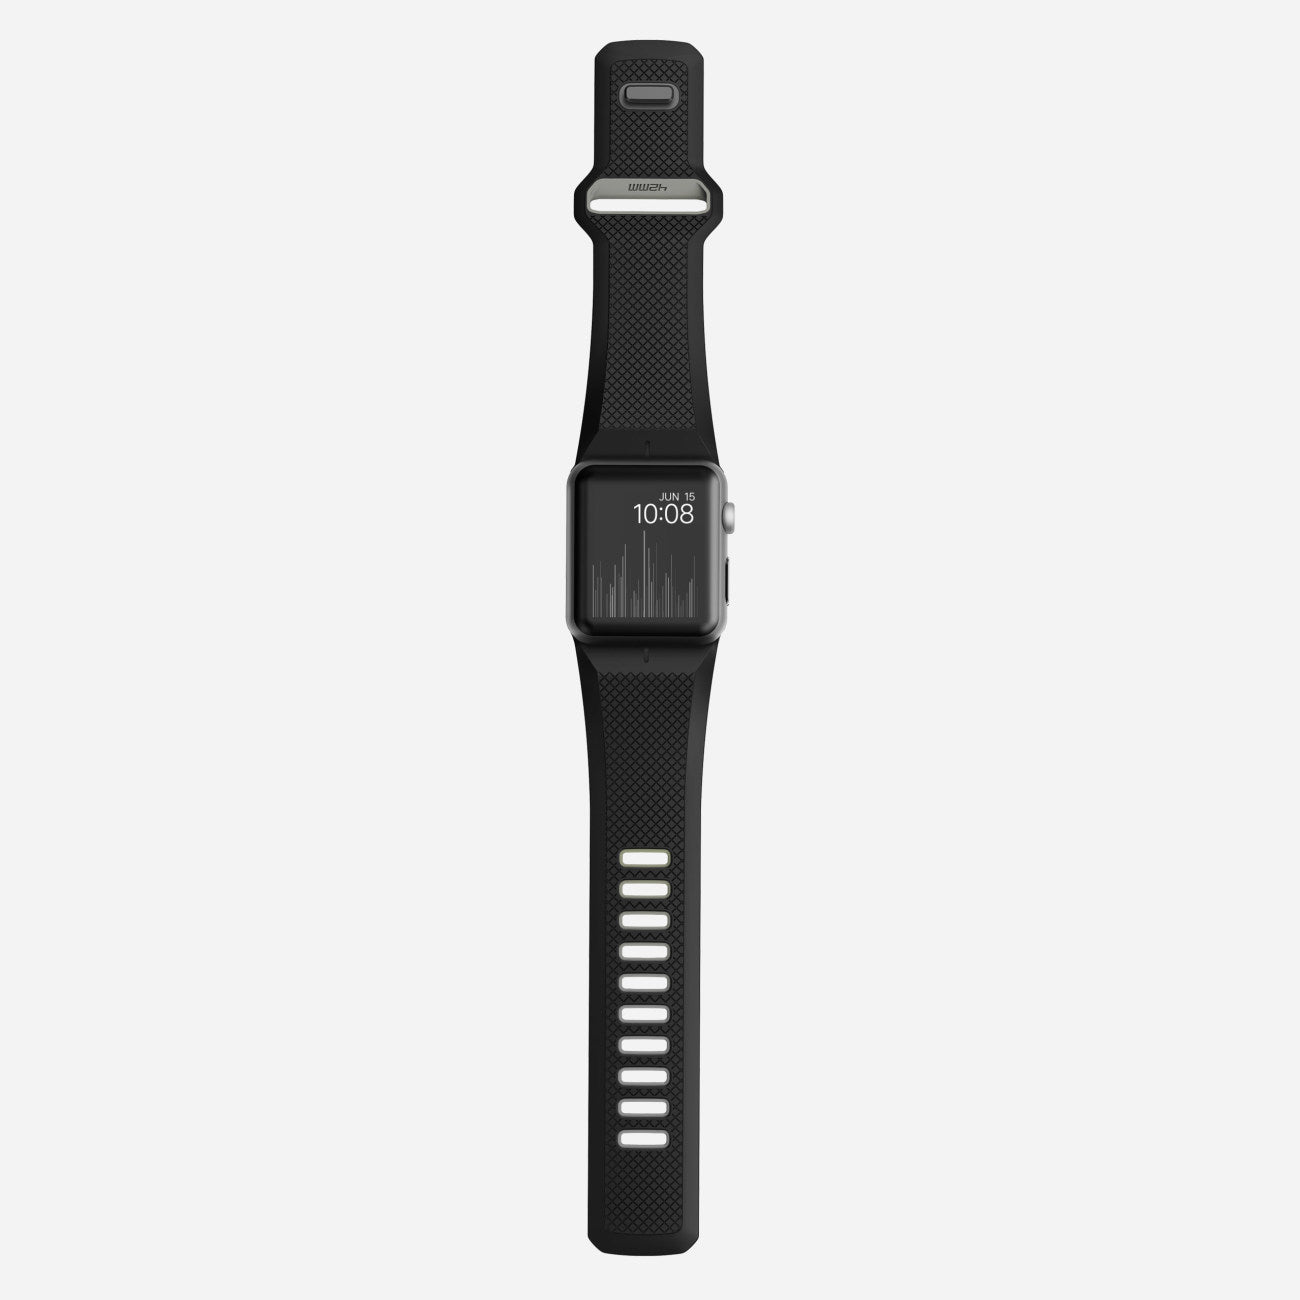 Black Slate Band : Nomad sport strap apple watch band in black slate cult